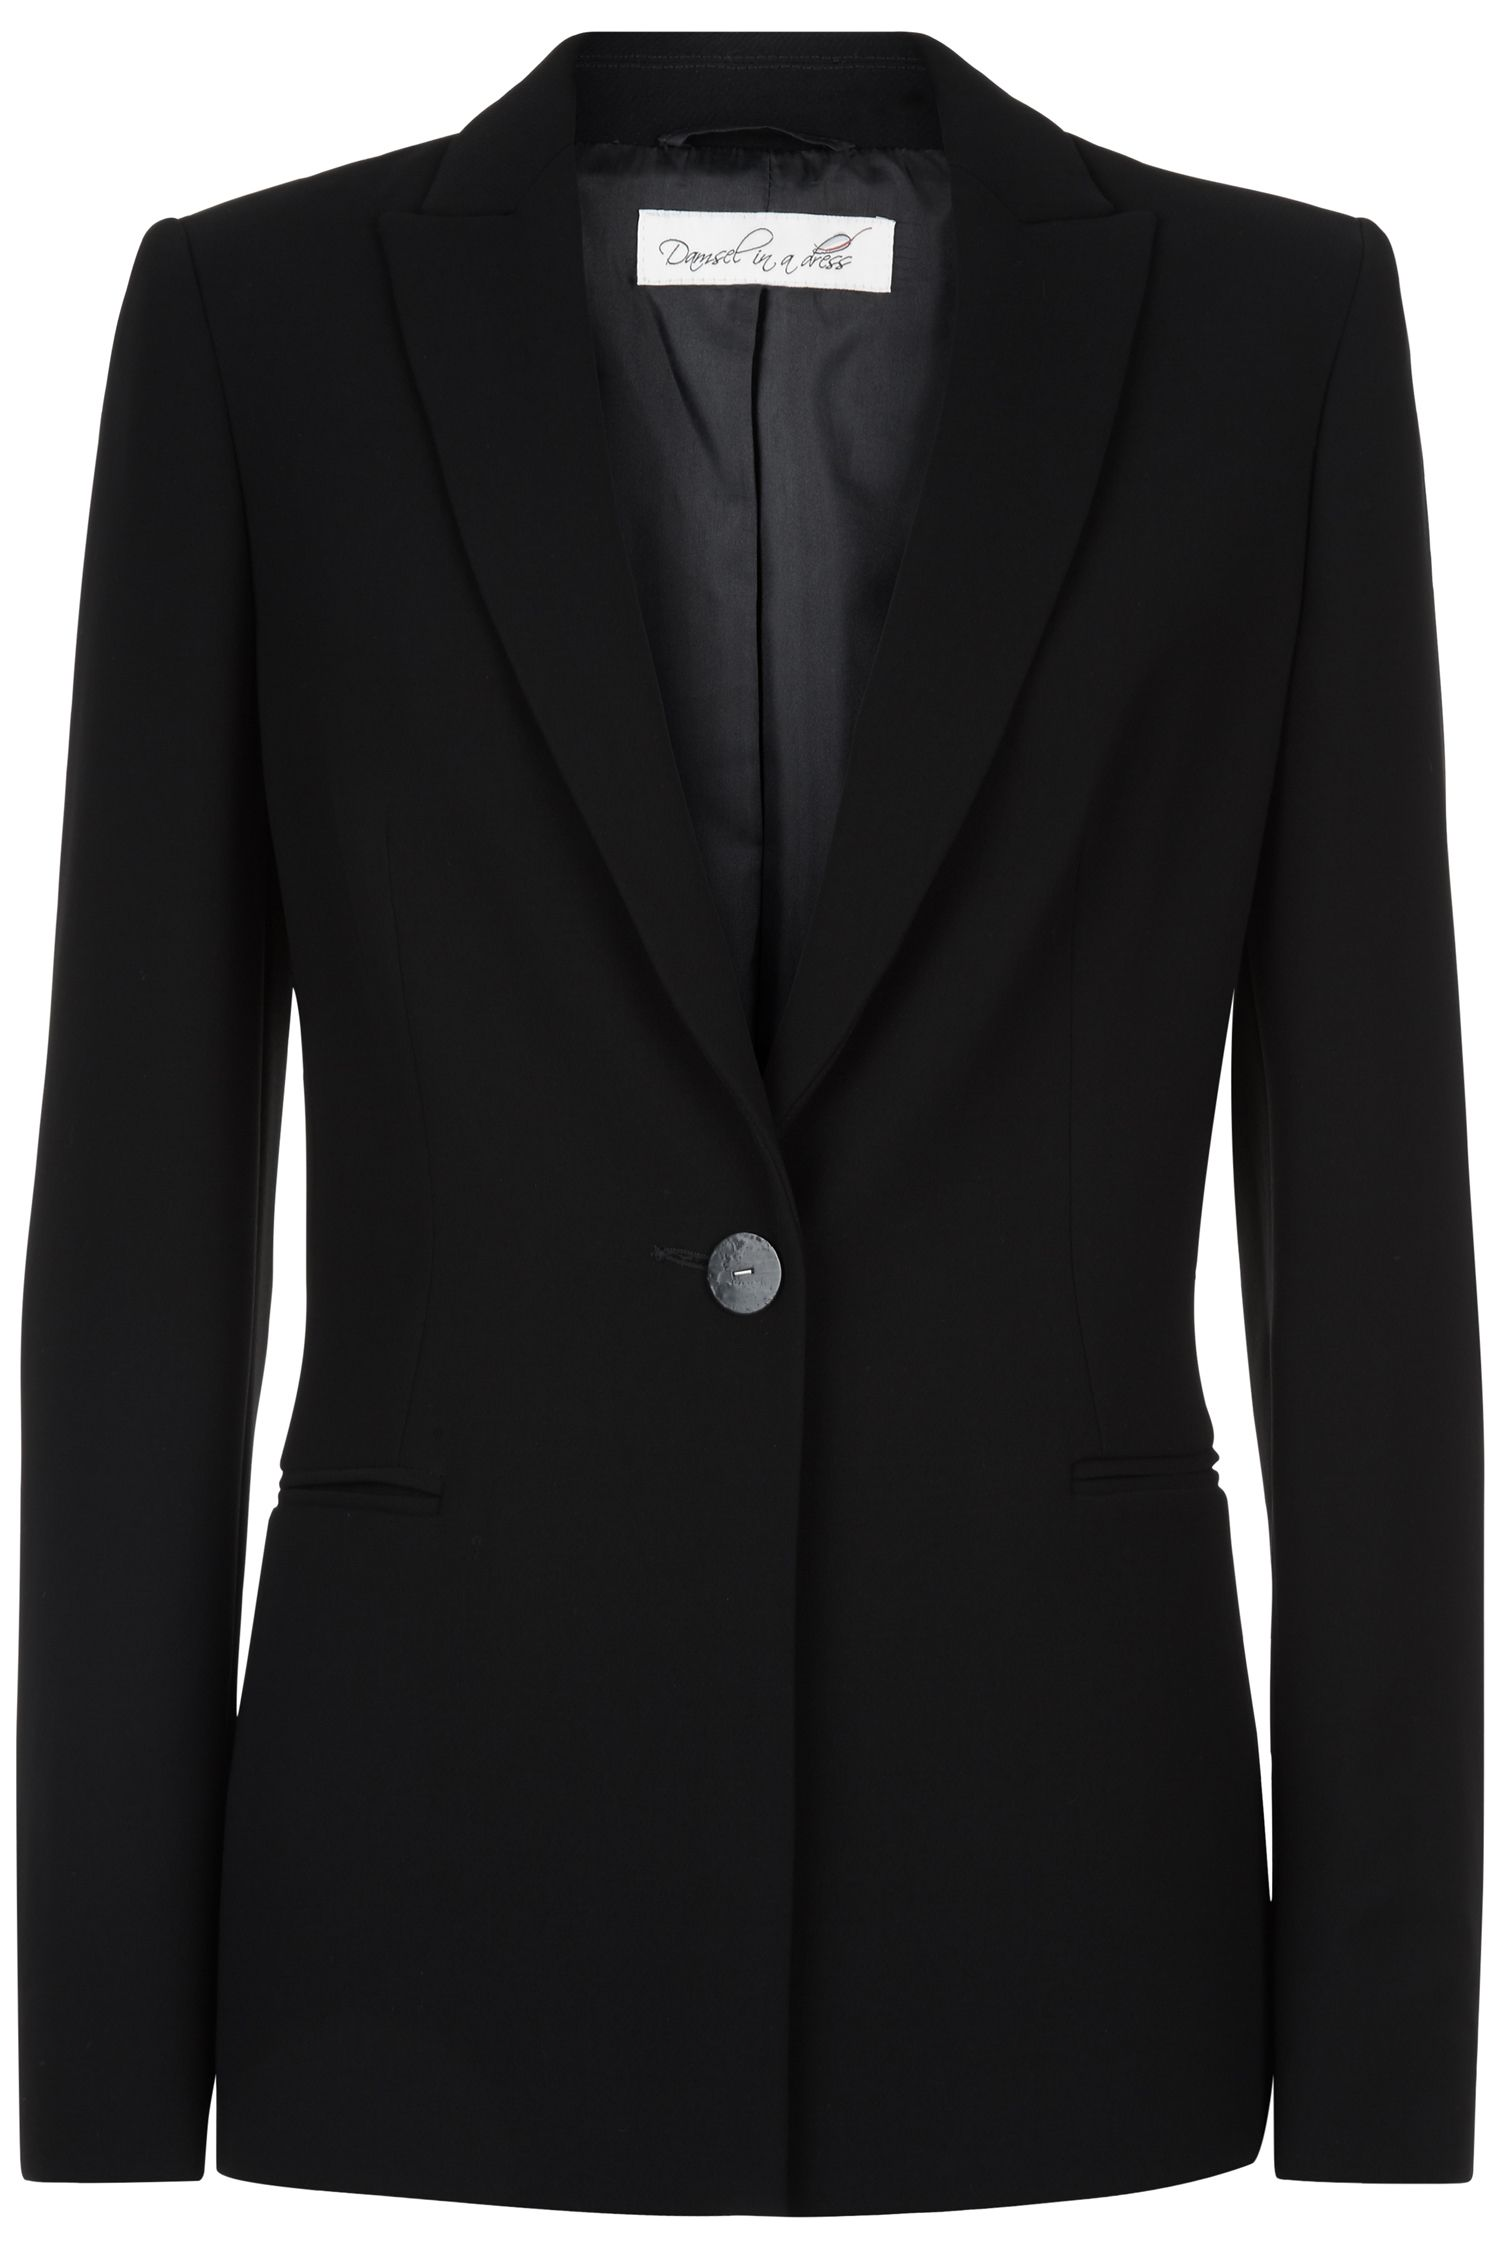 Damsel in a Dress Spotlight Jacket, Black